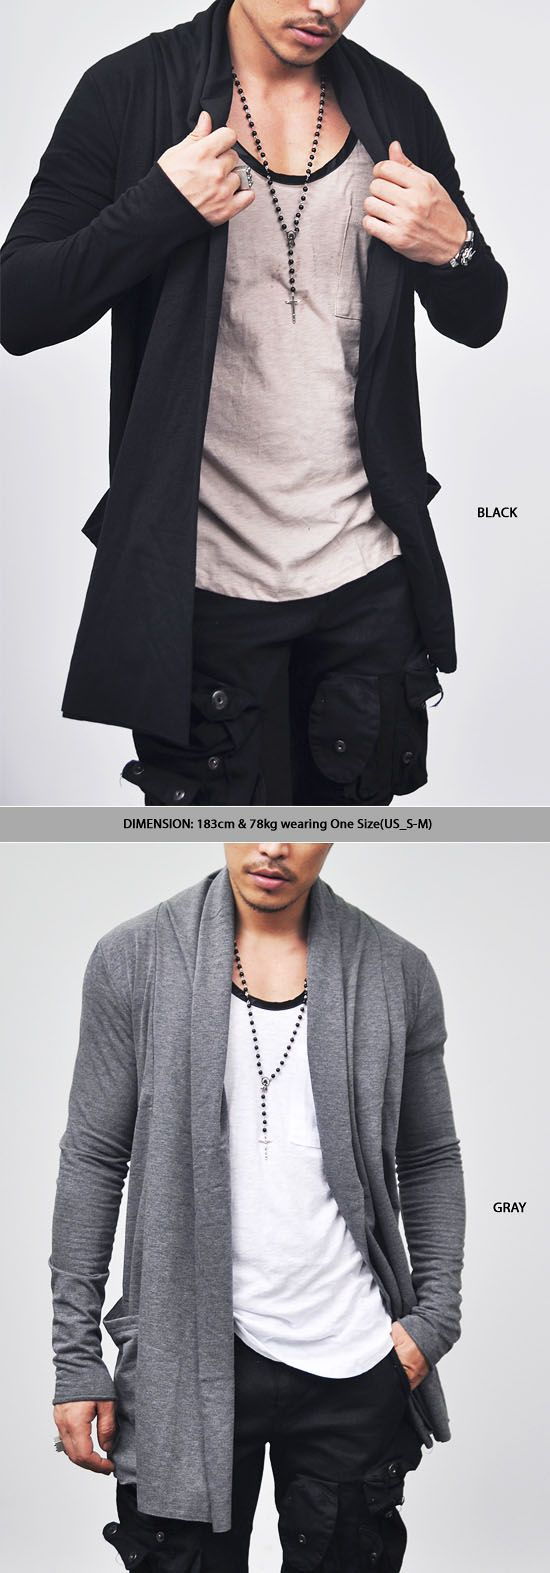 Outerwear :: Cardigans :: Avant-garde Edge Shawl Long-Cardigan 19 - Mens Fashion Clothing For An Attractive Guy Look